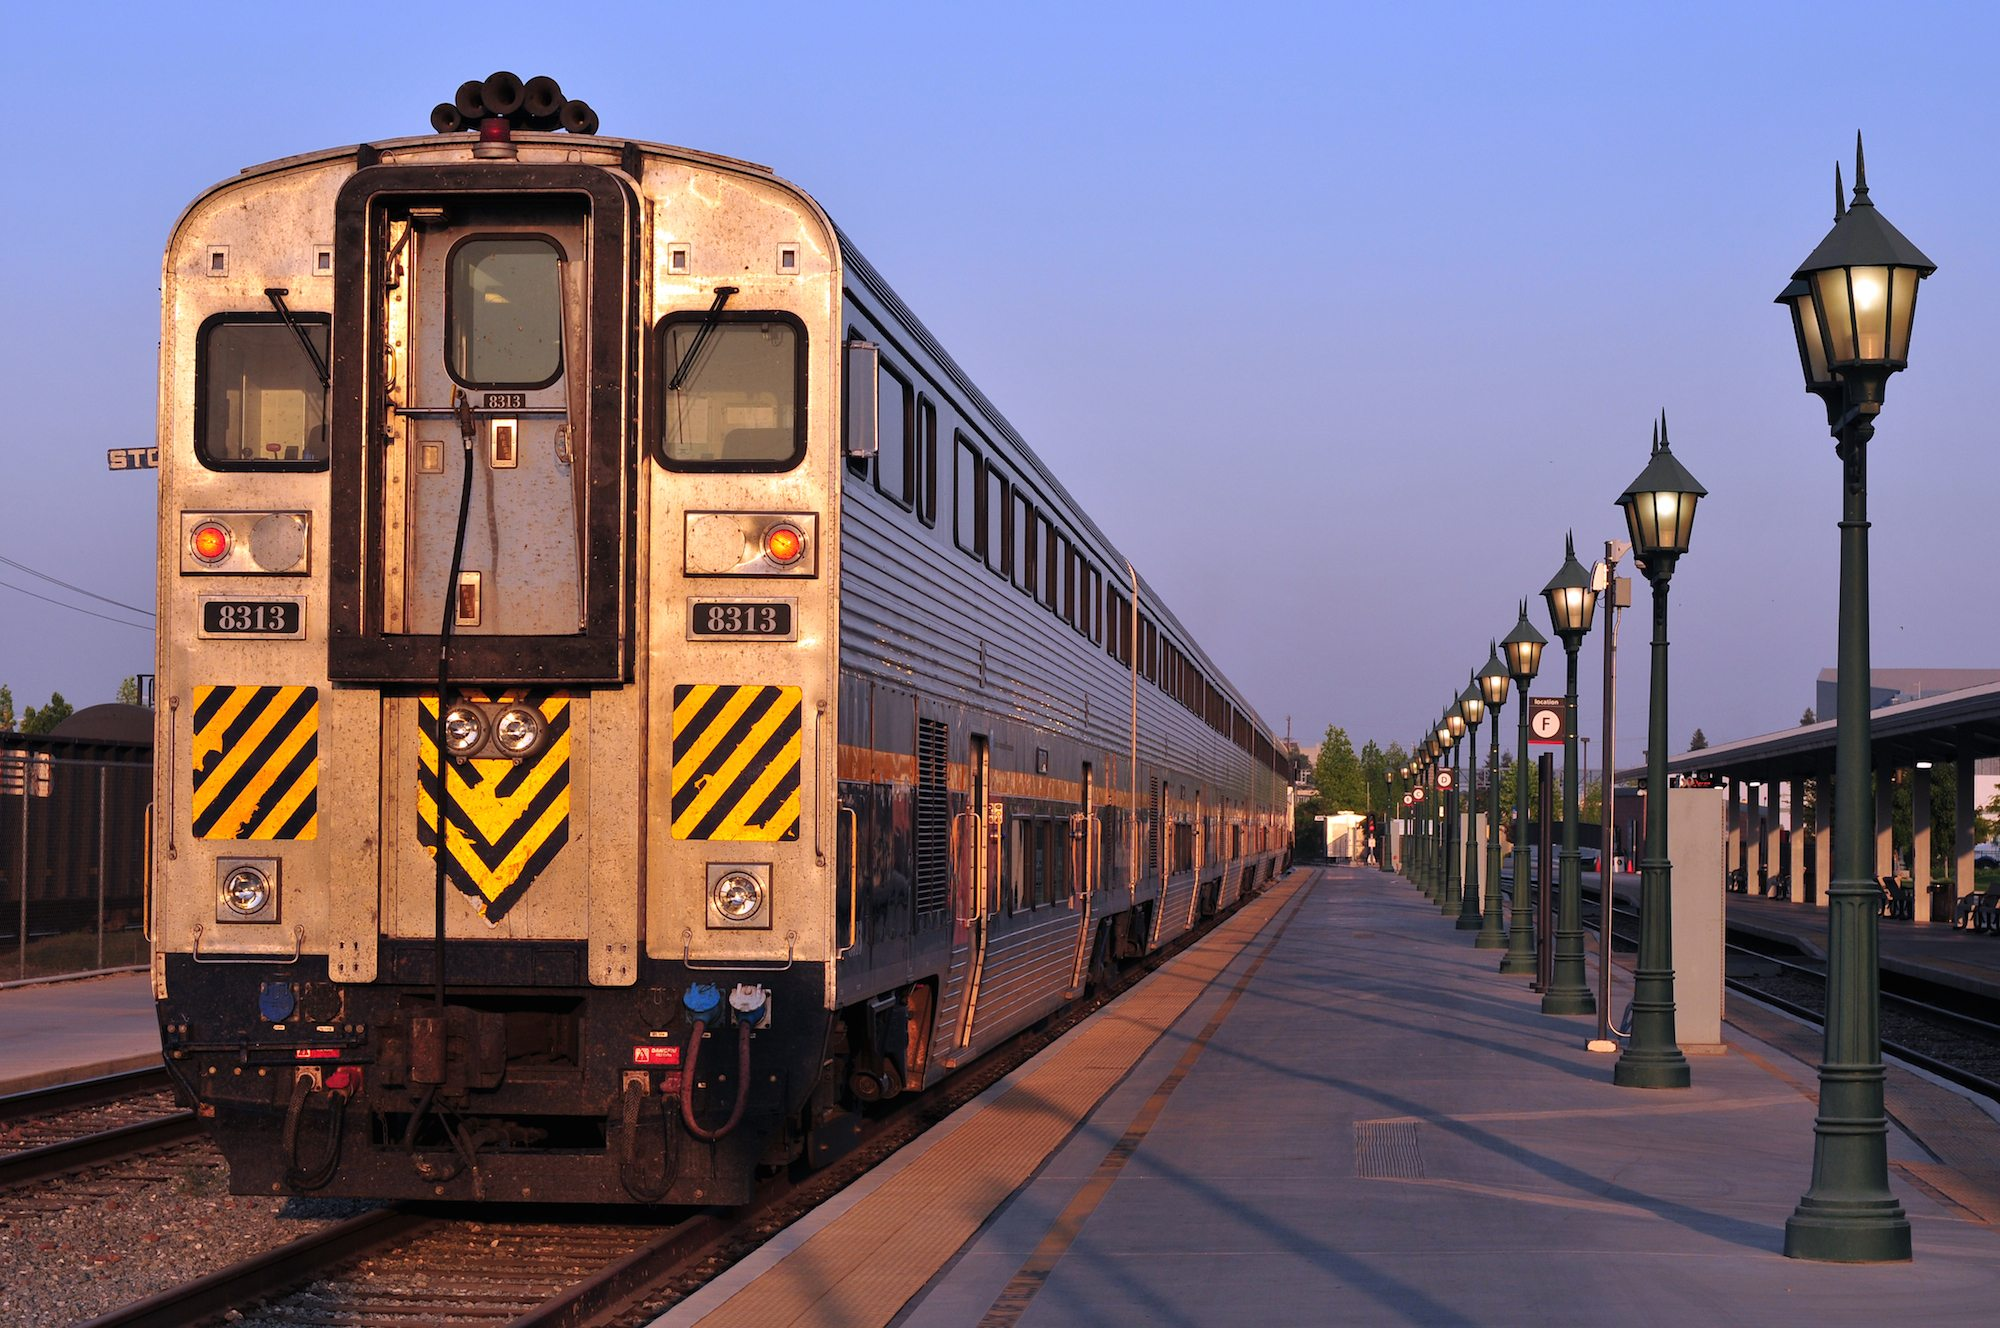 Traveling By Train in the U.S.